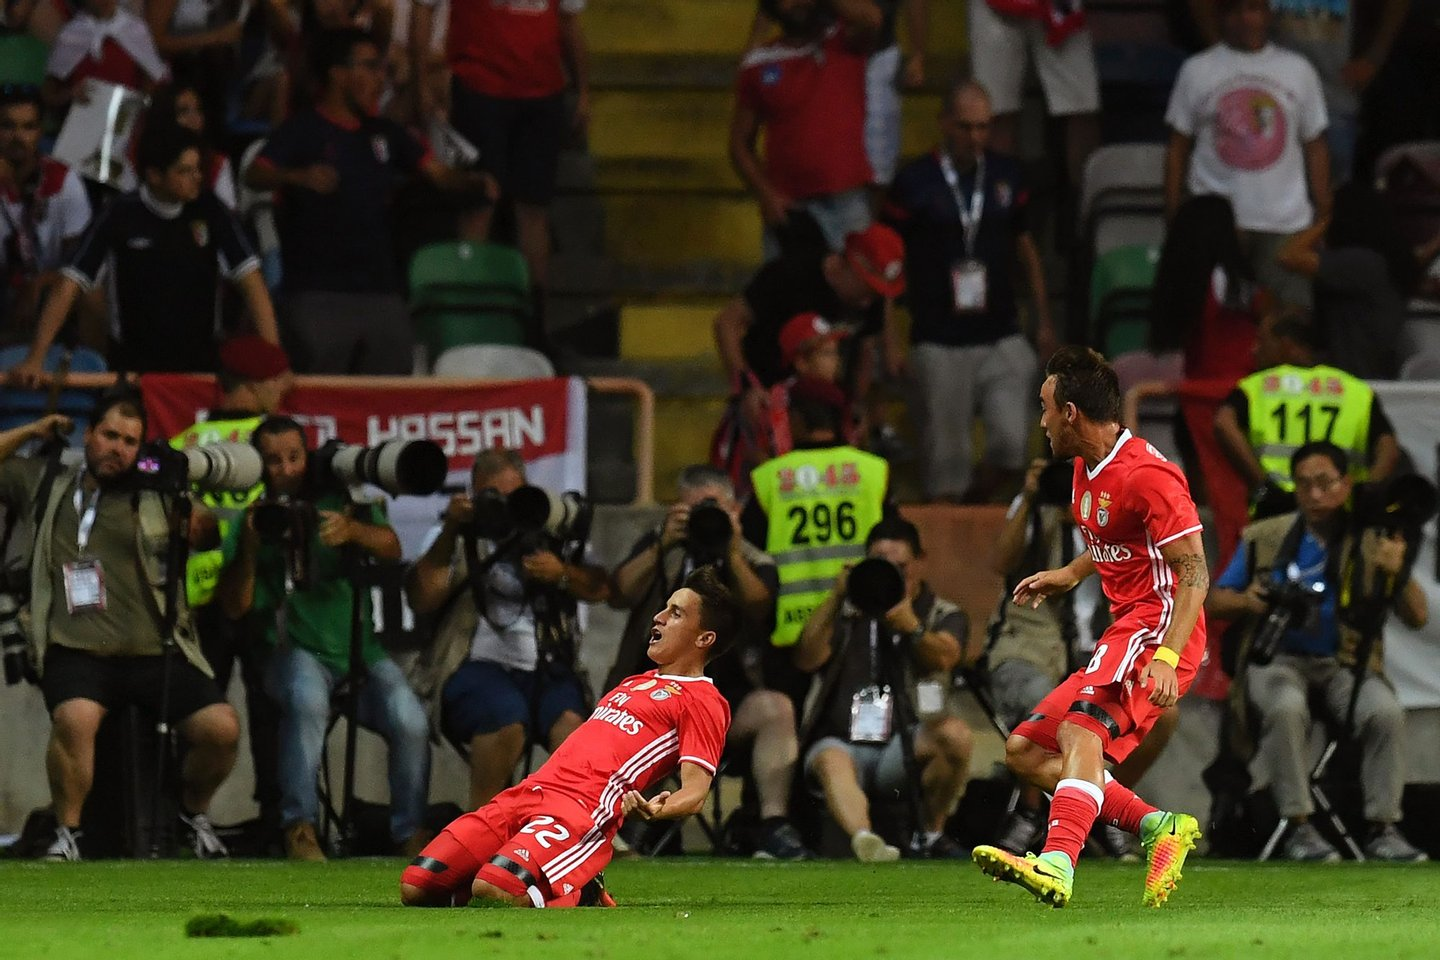 Benfica's Argentinian forward Franco Cervi (L) celebrates after scoring a goal during the Portuguese Supercup football match SL Benfica vs SC Braga at the Aveiro Municipal stadium in Aveiro on August 7, 2016. / AFP / FRANCISCO LEONG        (Photo credit should read FRANCISCO LEONG/AFP/Getty Images)